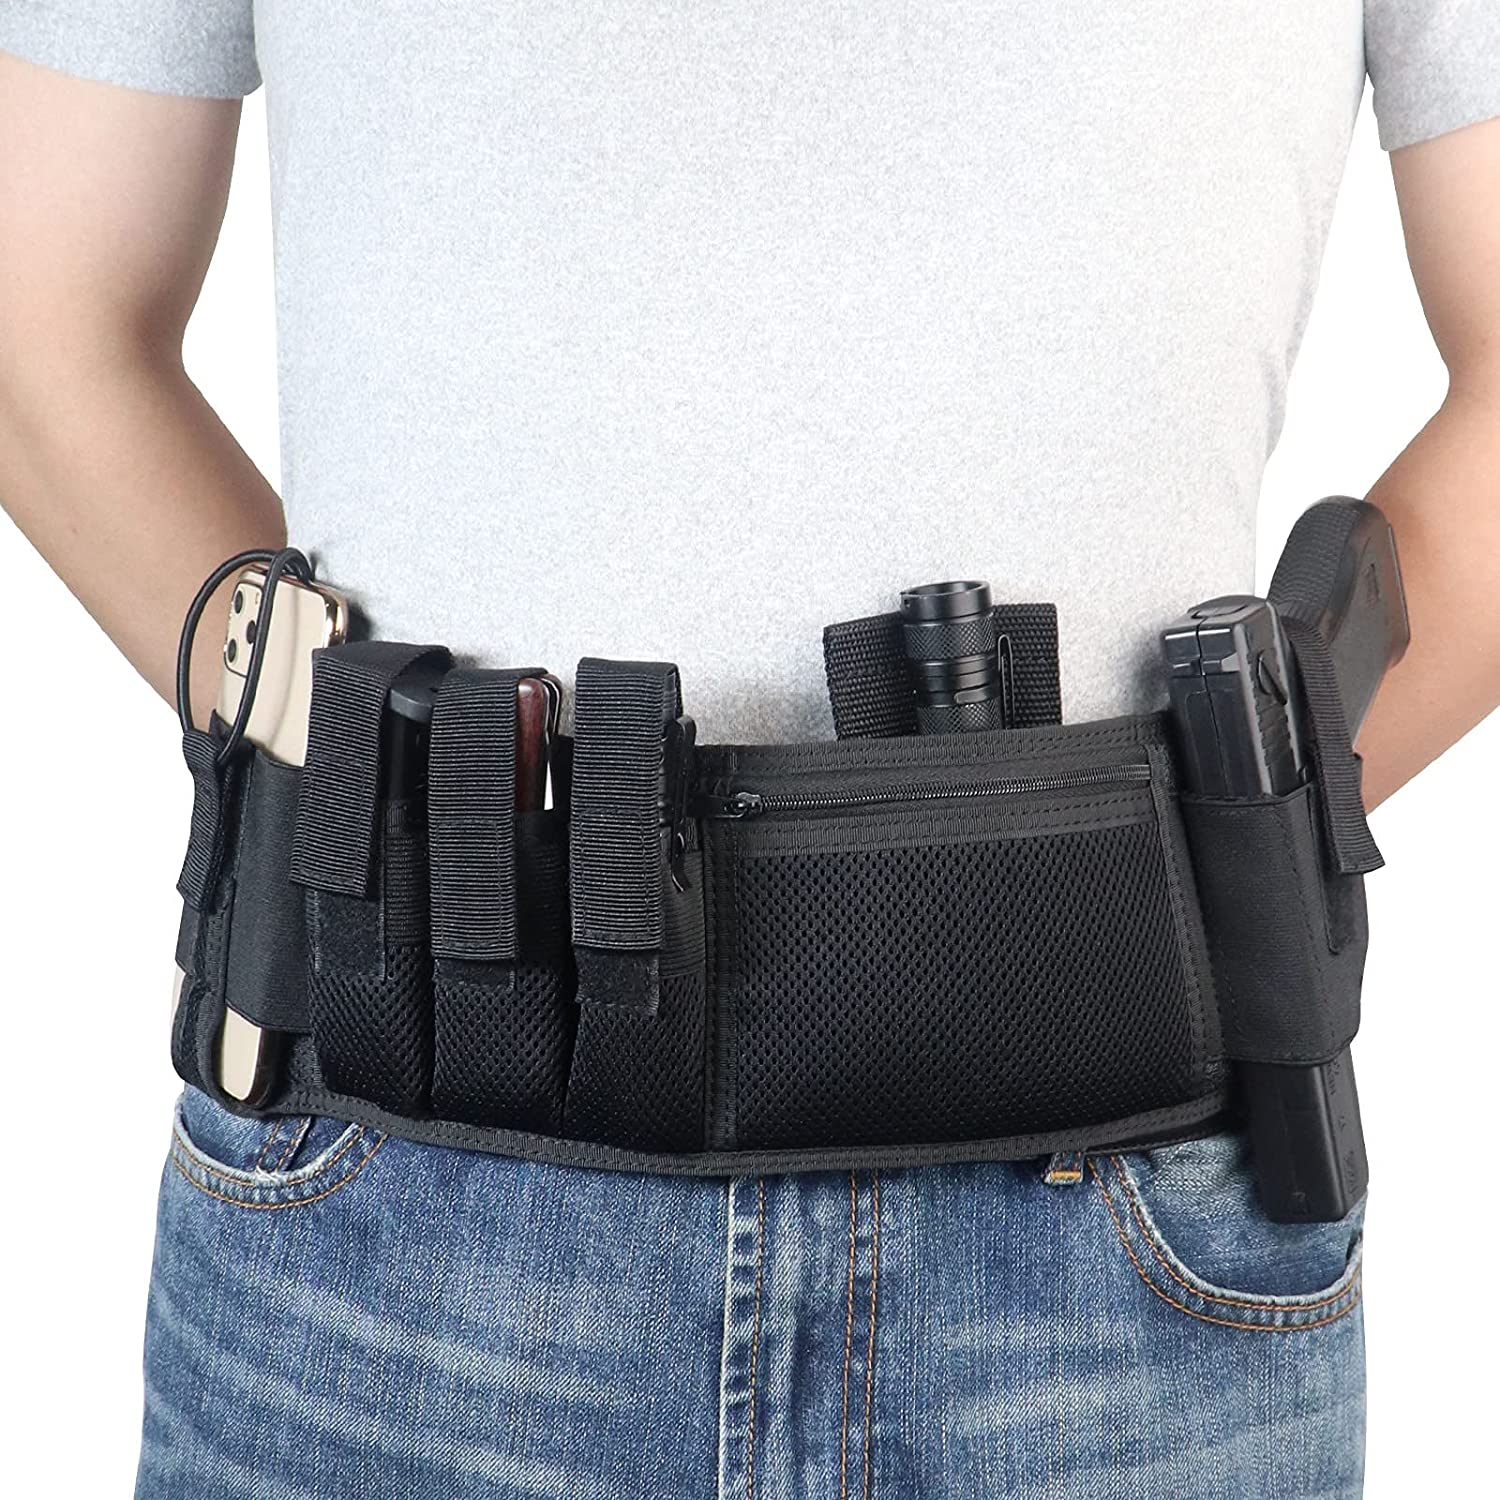 Kosibate Belly Band Gun Holster Concealed Compatible Carry for Oklahoma City Mall Gifts